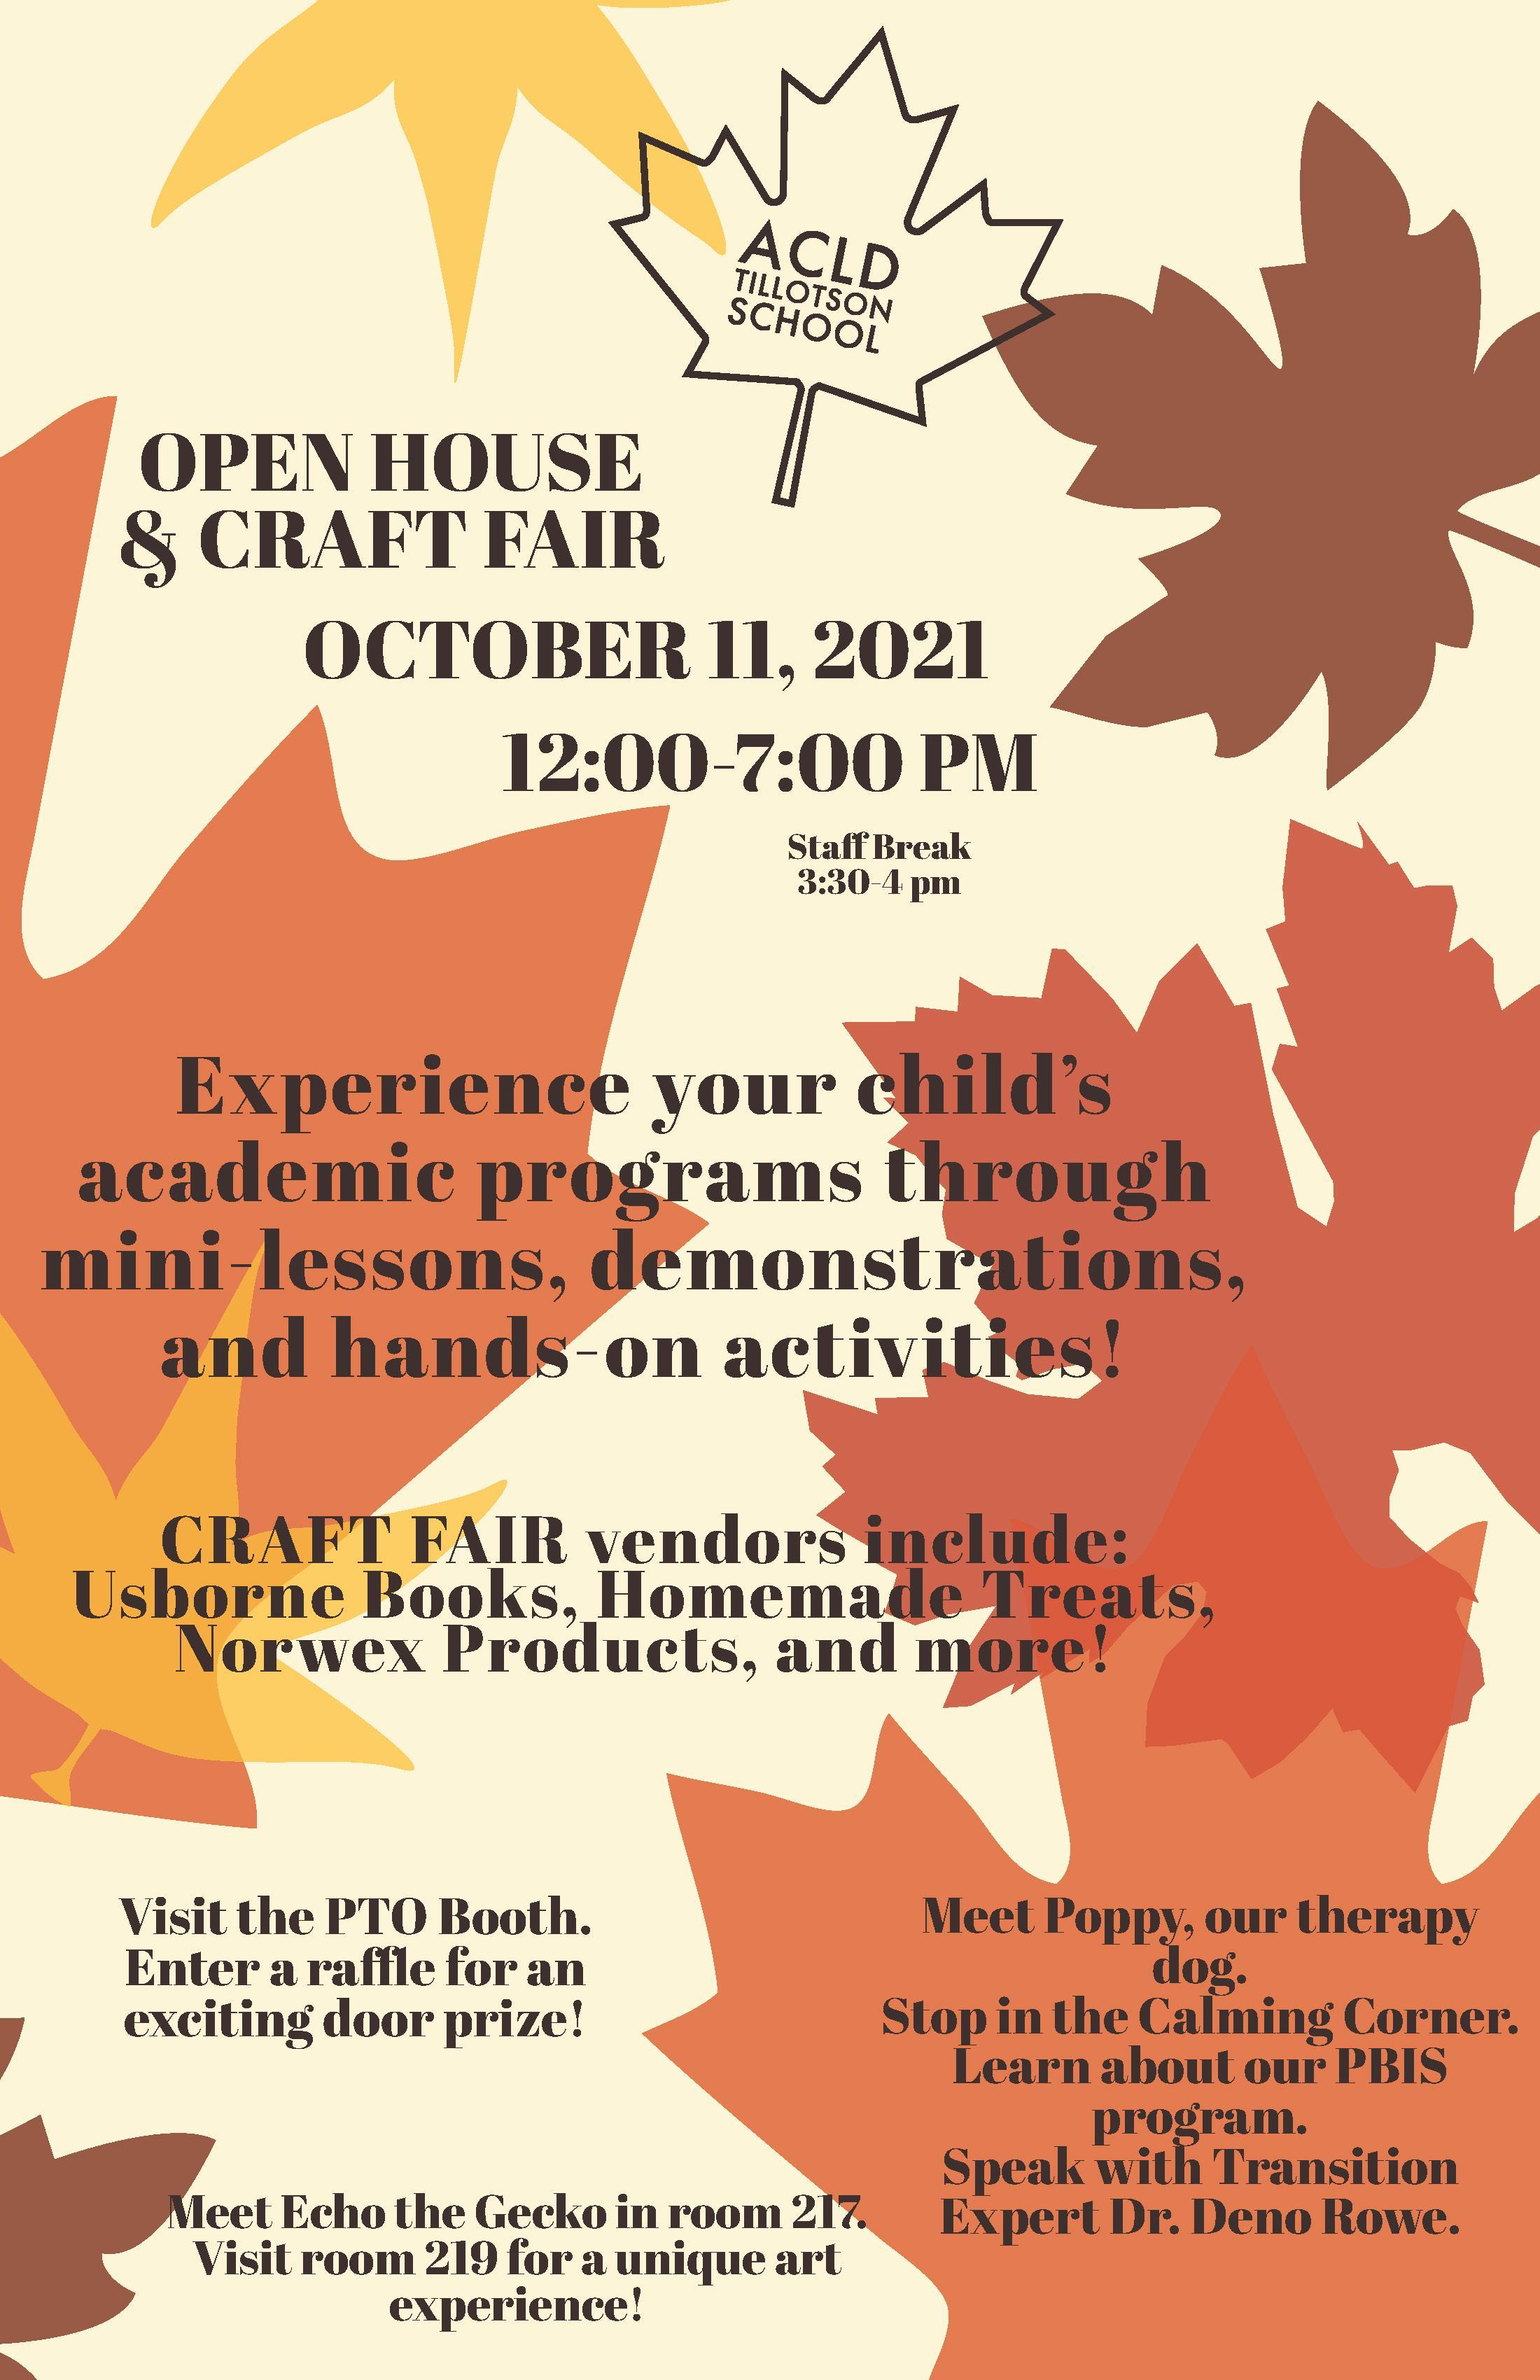 open house and craft fair